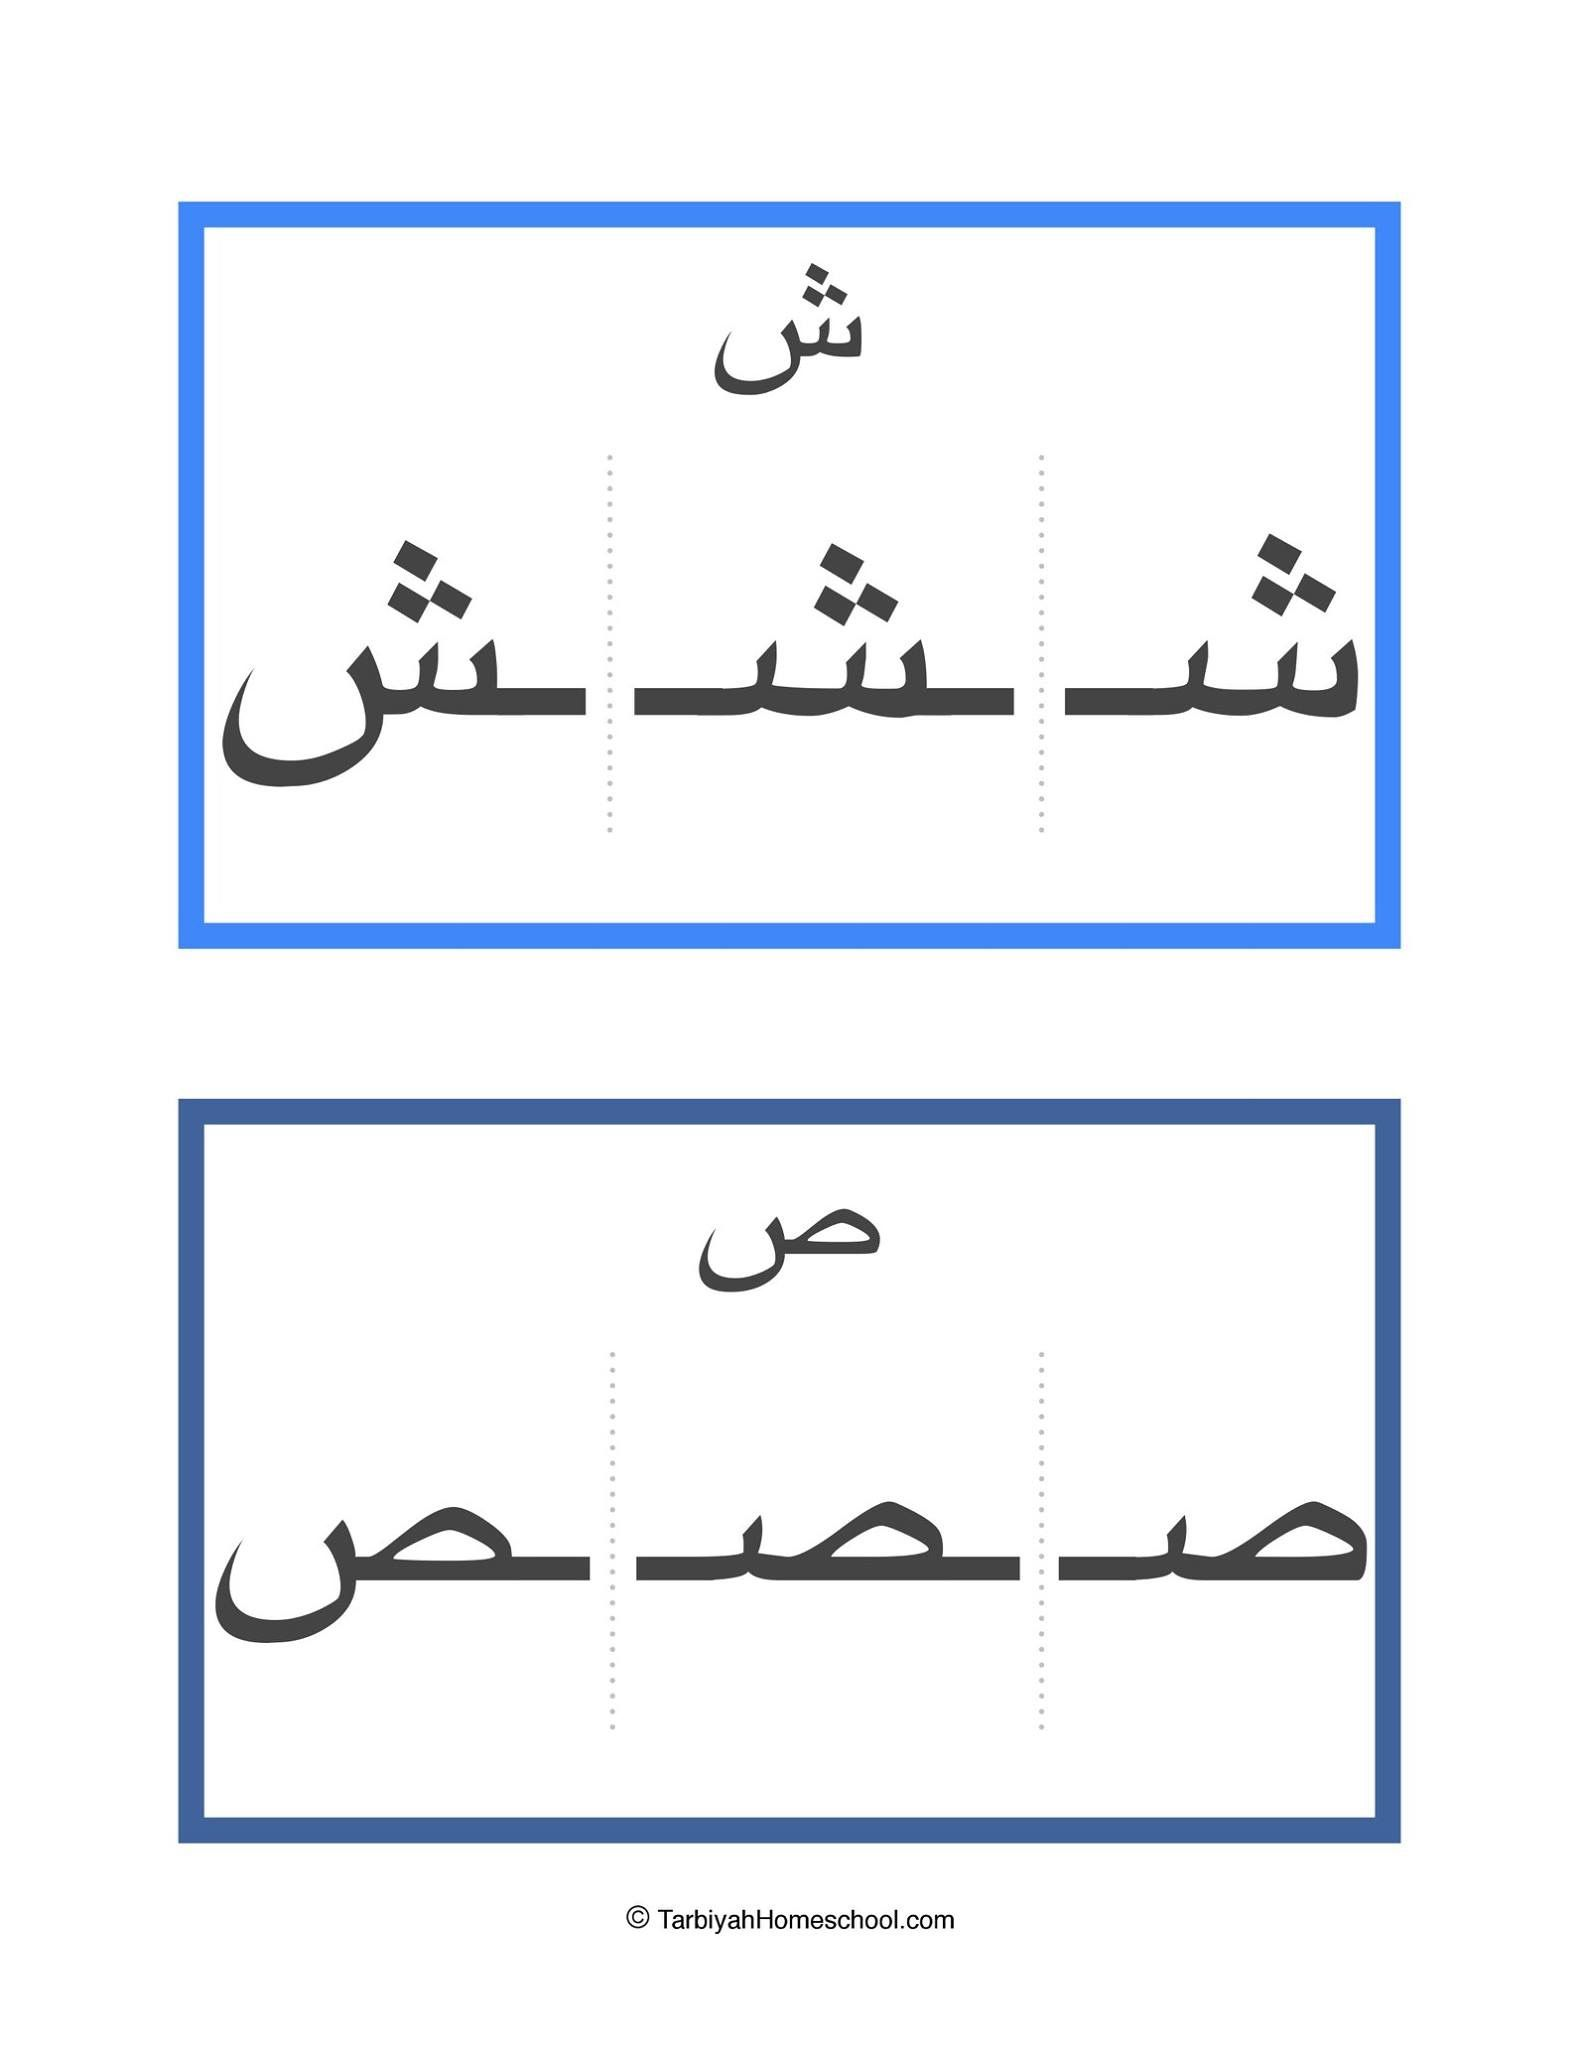 Pin by Zahra on Arabic collection | Pinterest | Arabic alphabet ...